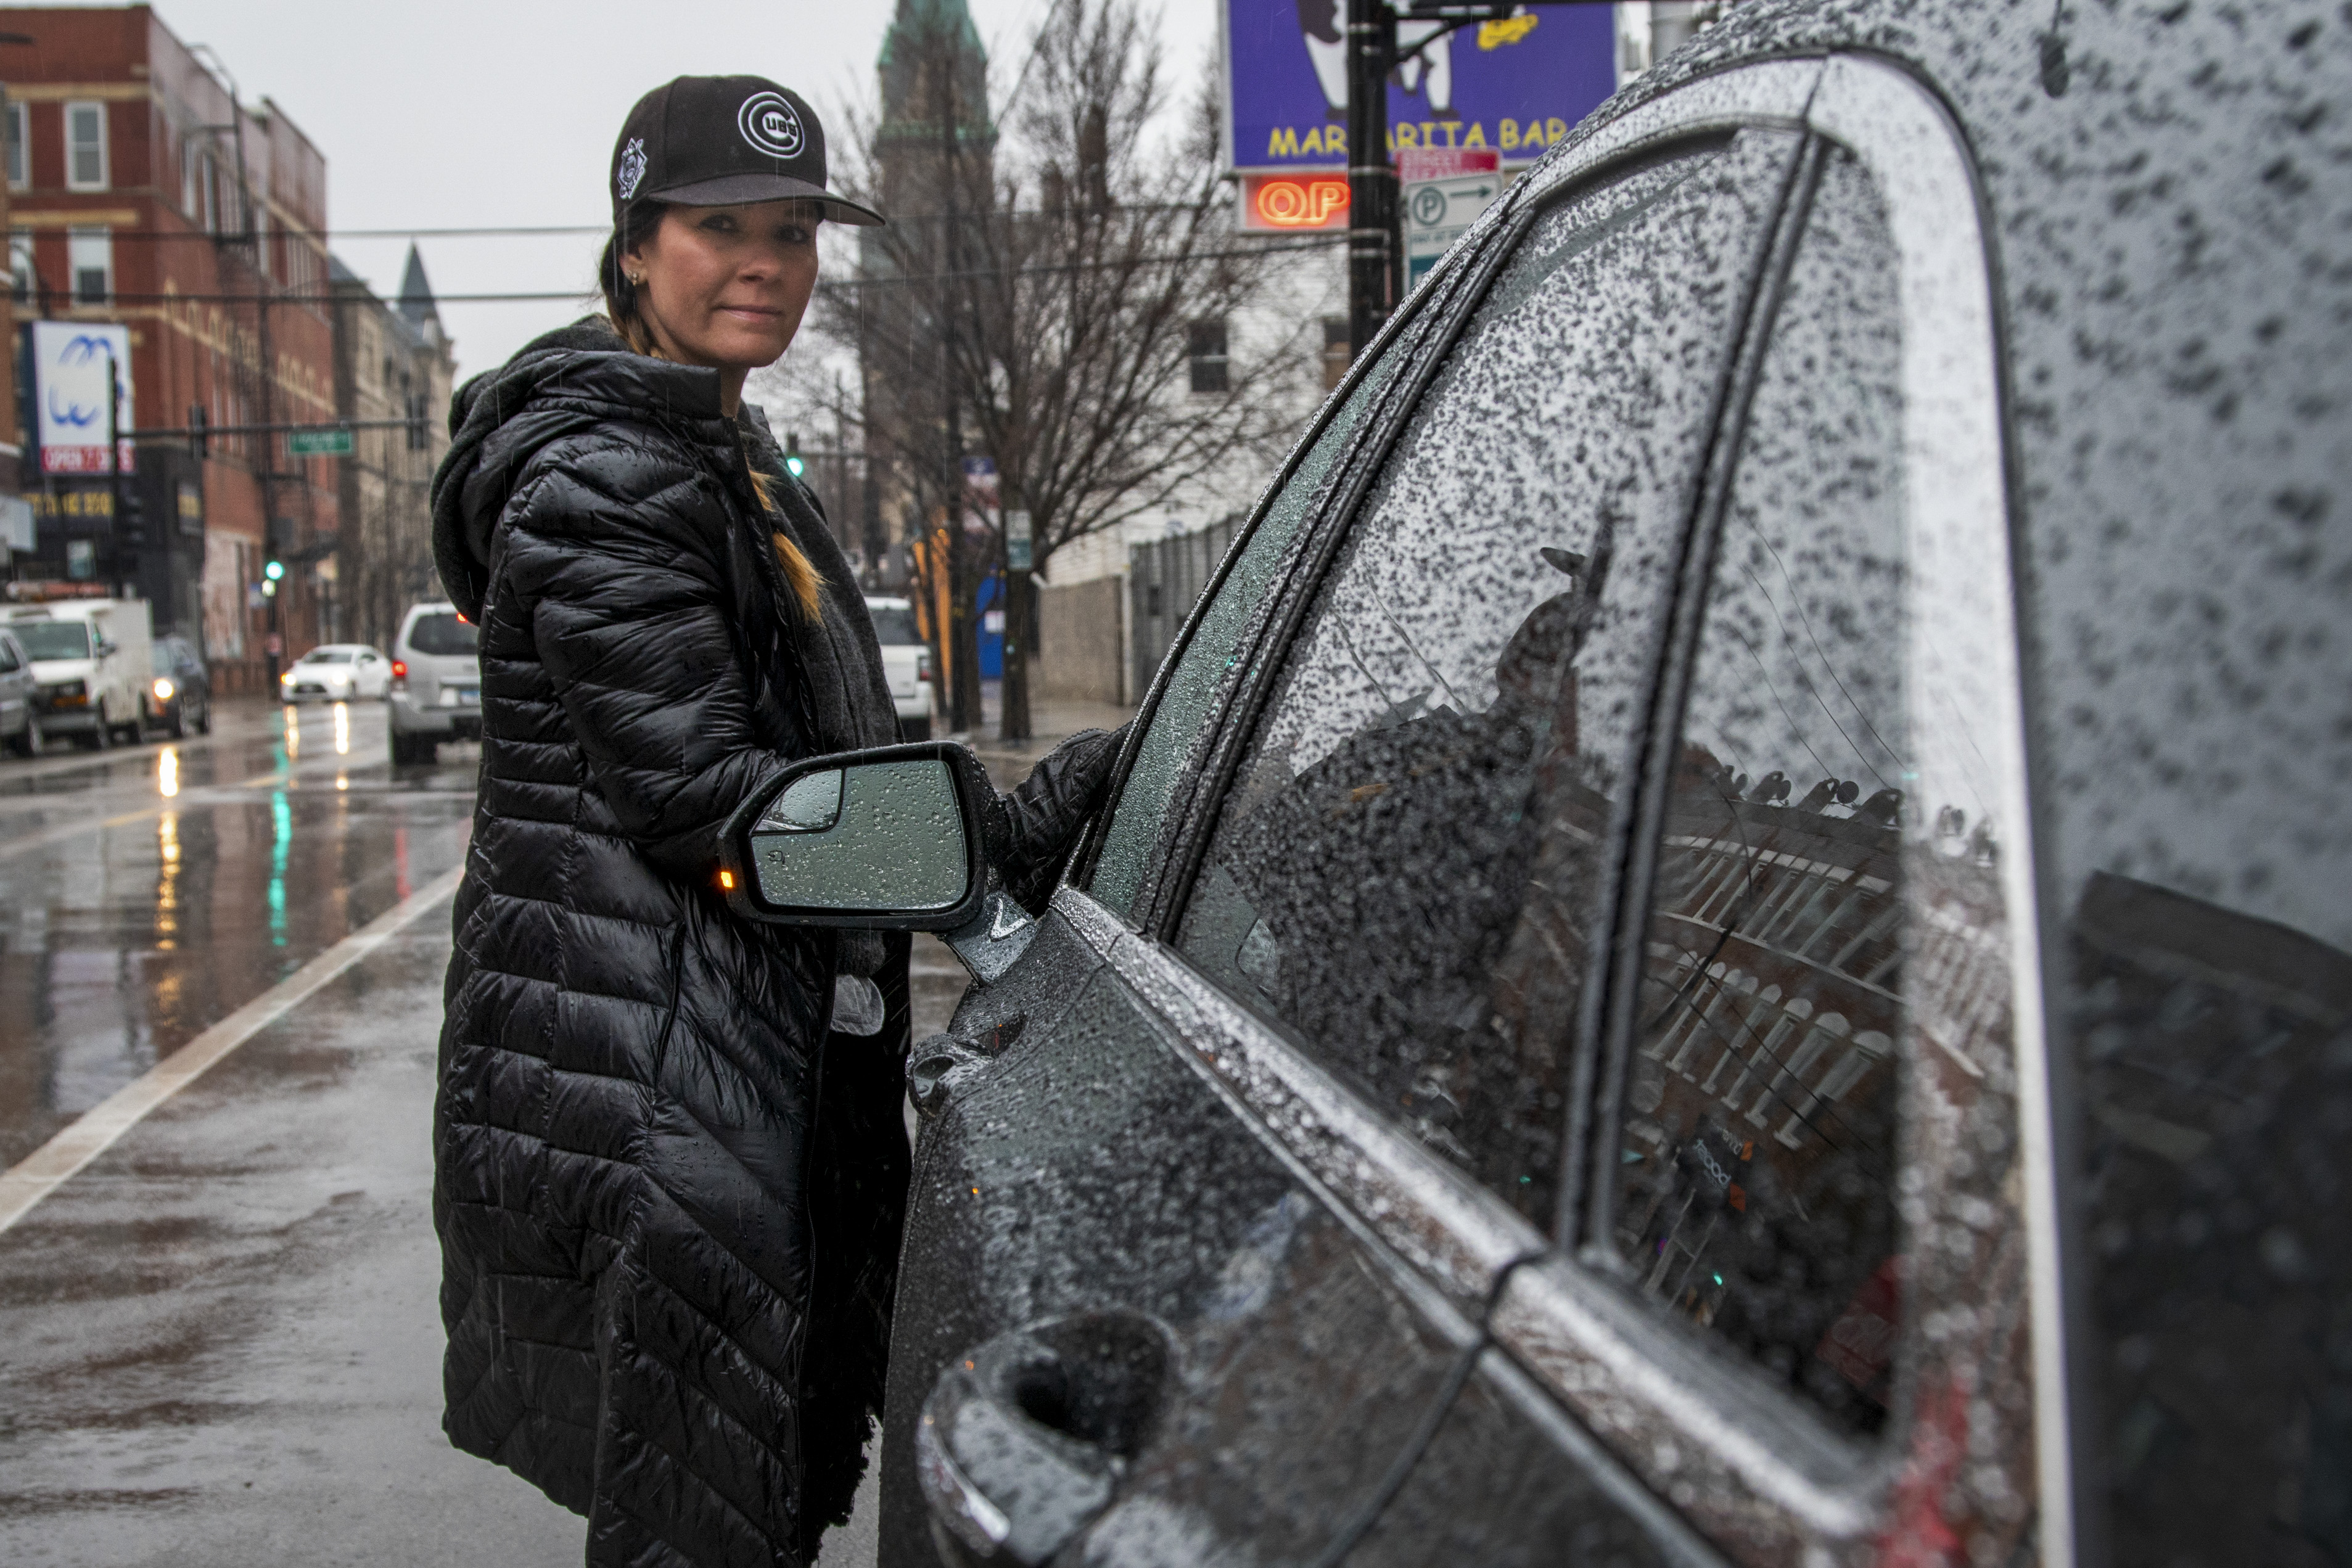 Marion Dollar of Pilsen has decided not to drive for Uber and Lyft to do her part in social distancing amid the coronavirus crisis, even if that means forgoing income.